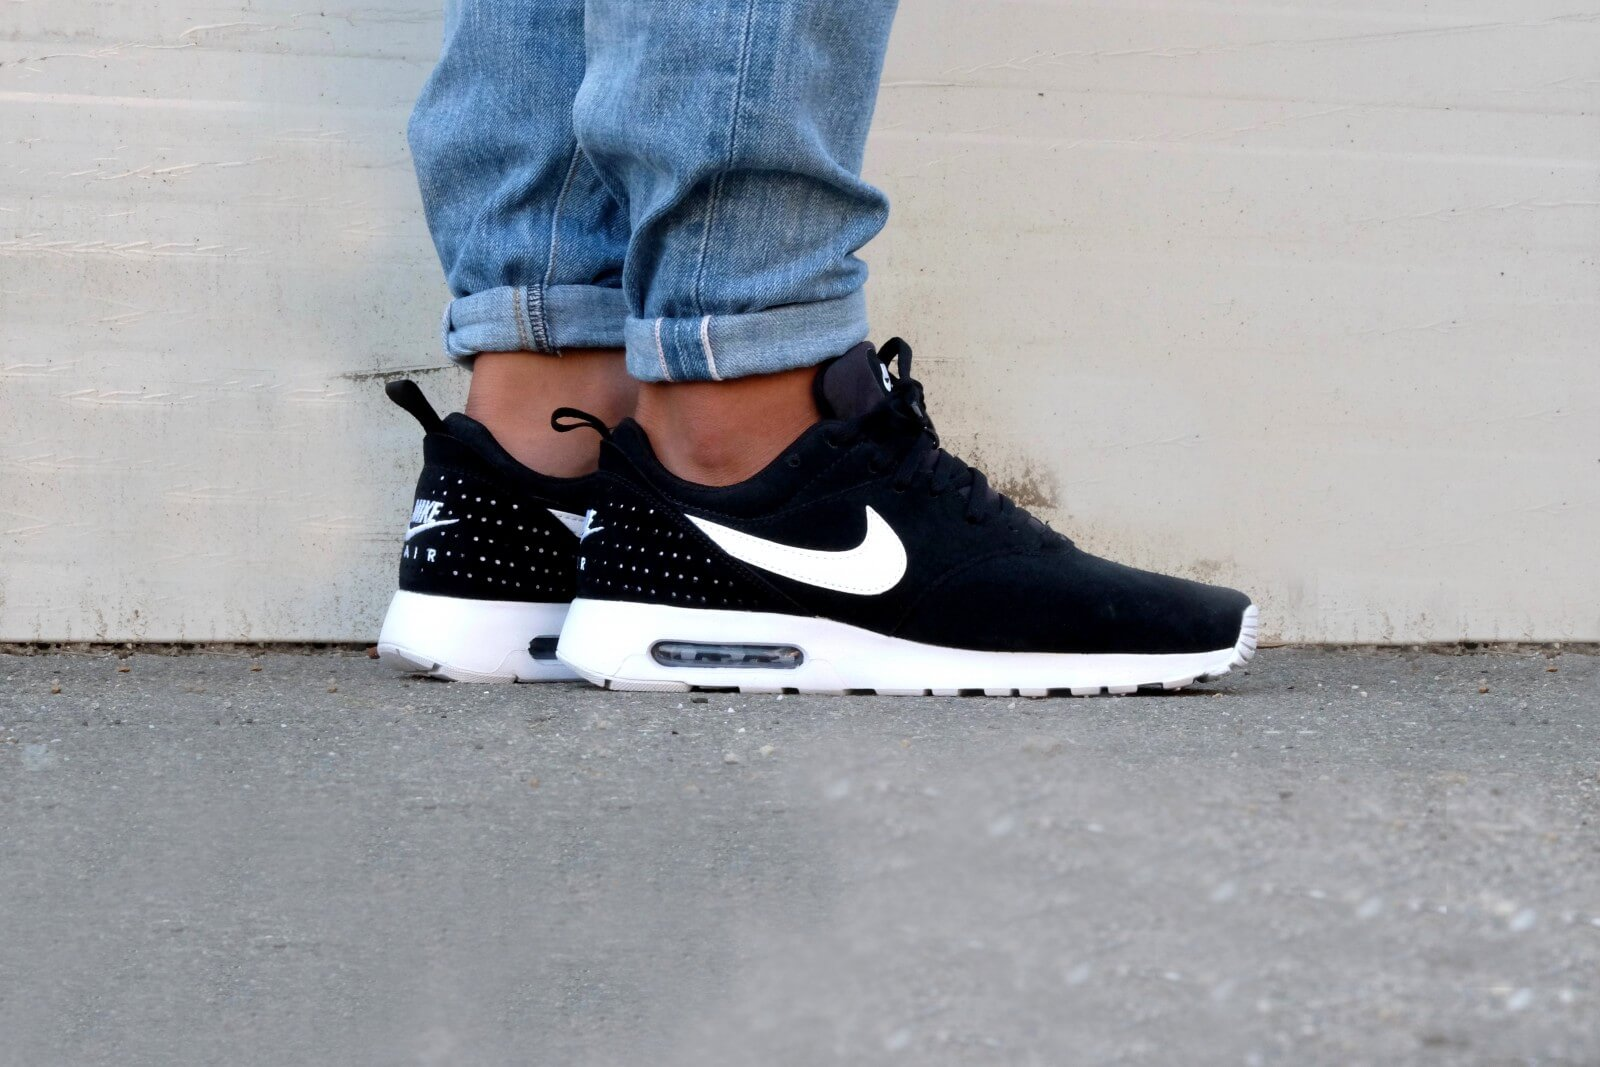 Nike Air Max Tavas LTR Black White 802611 001